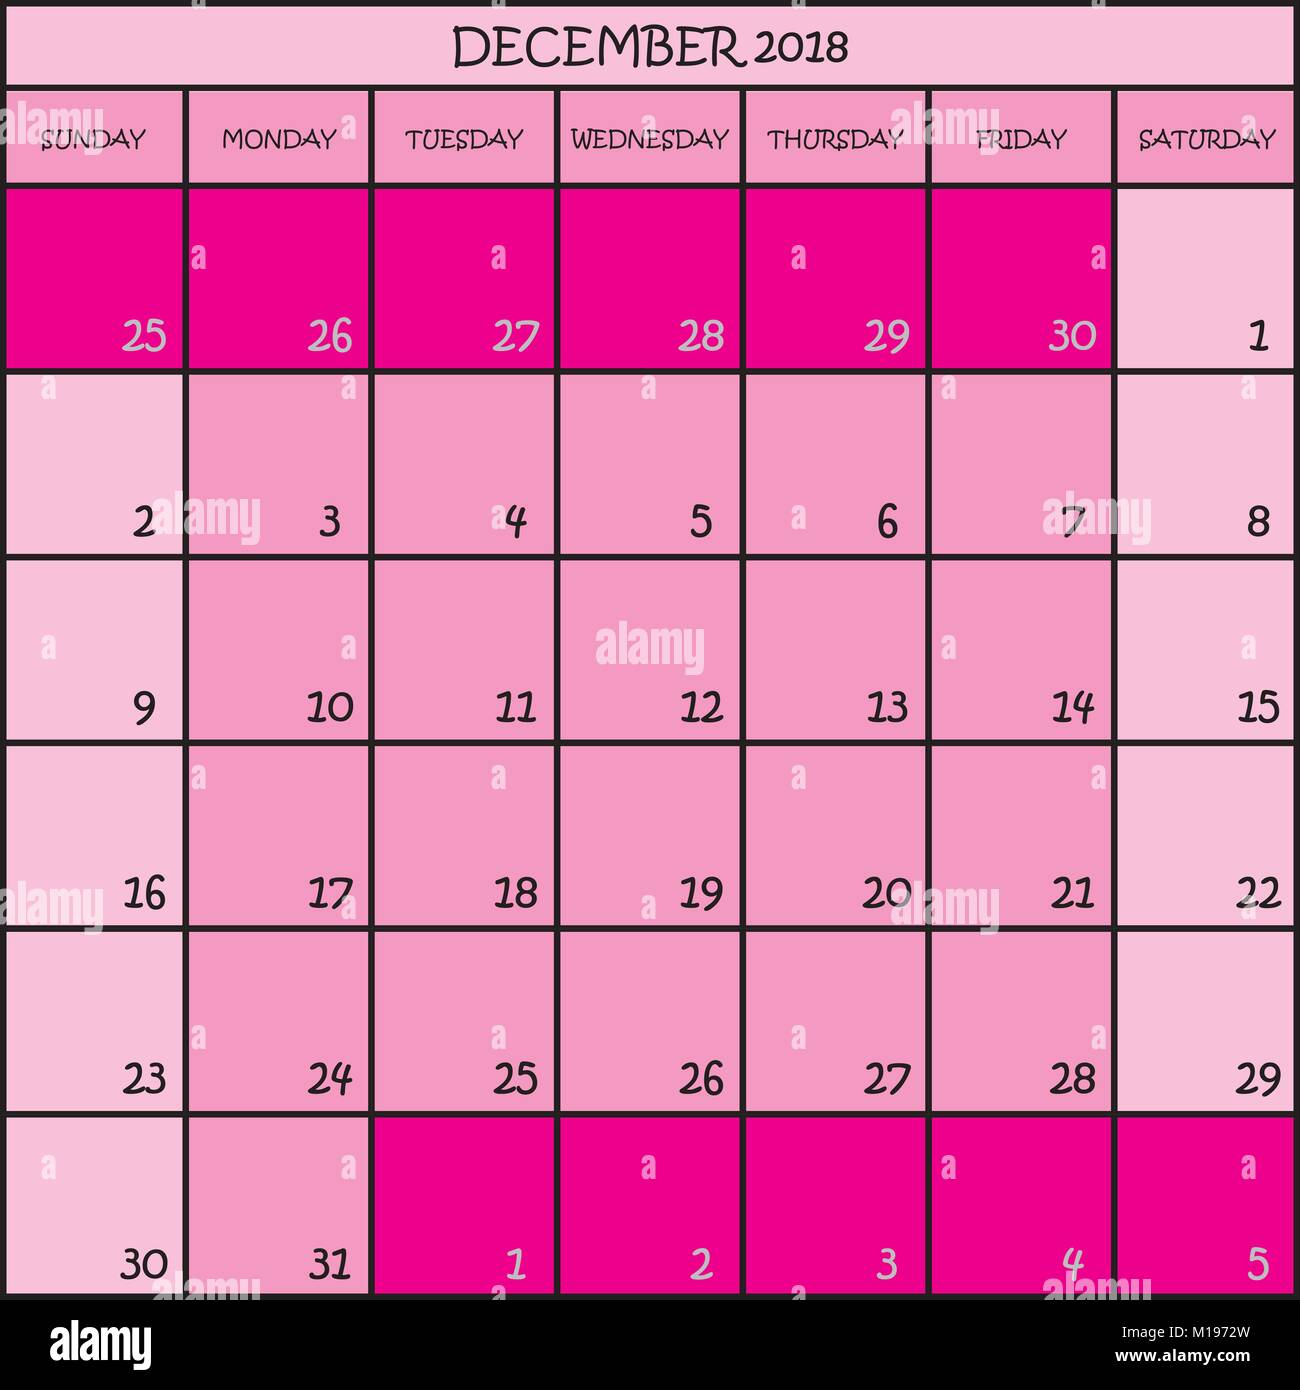 Calendar Planner Month December 2018 On Transparent Background Stock